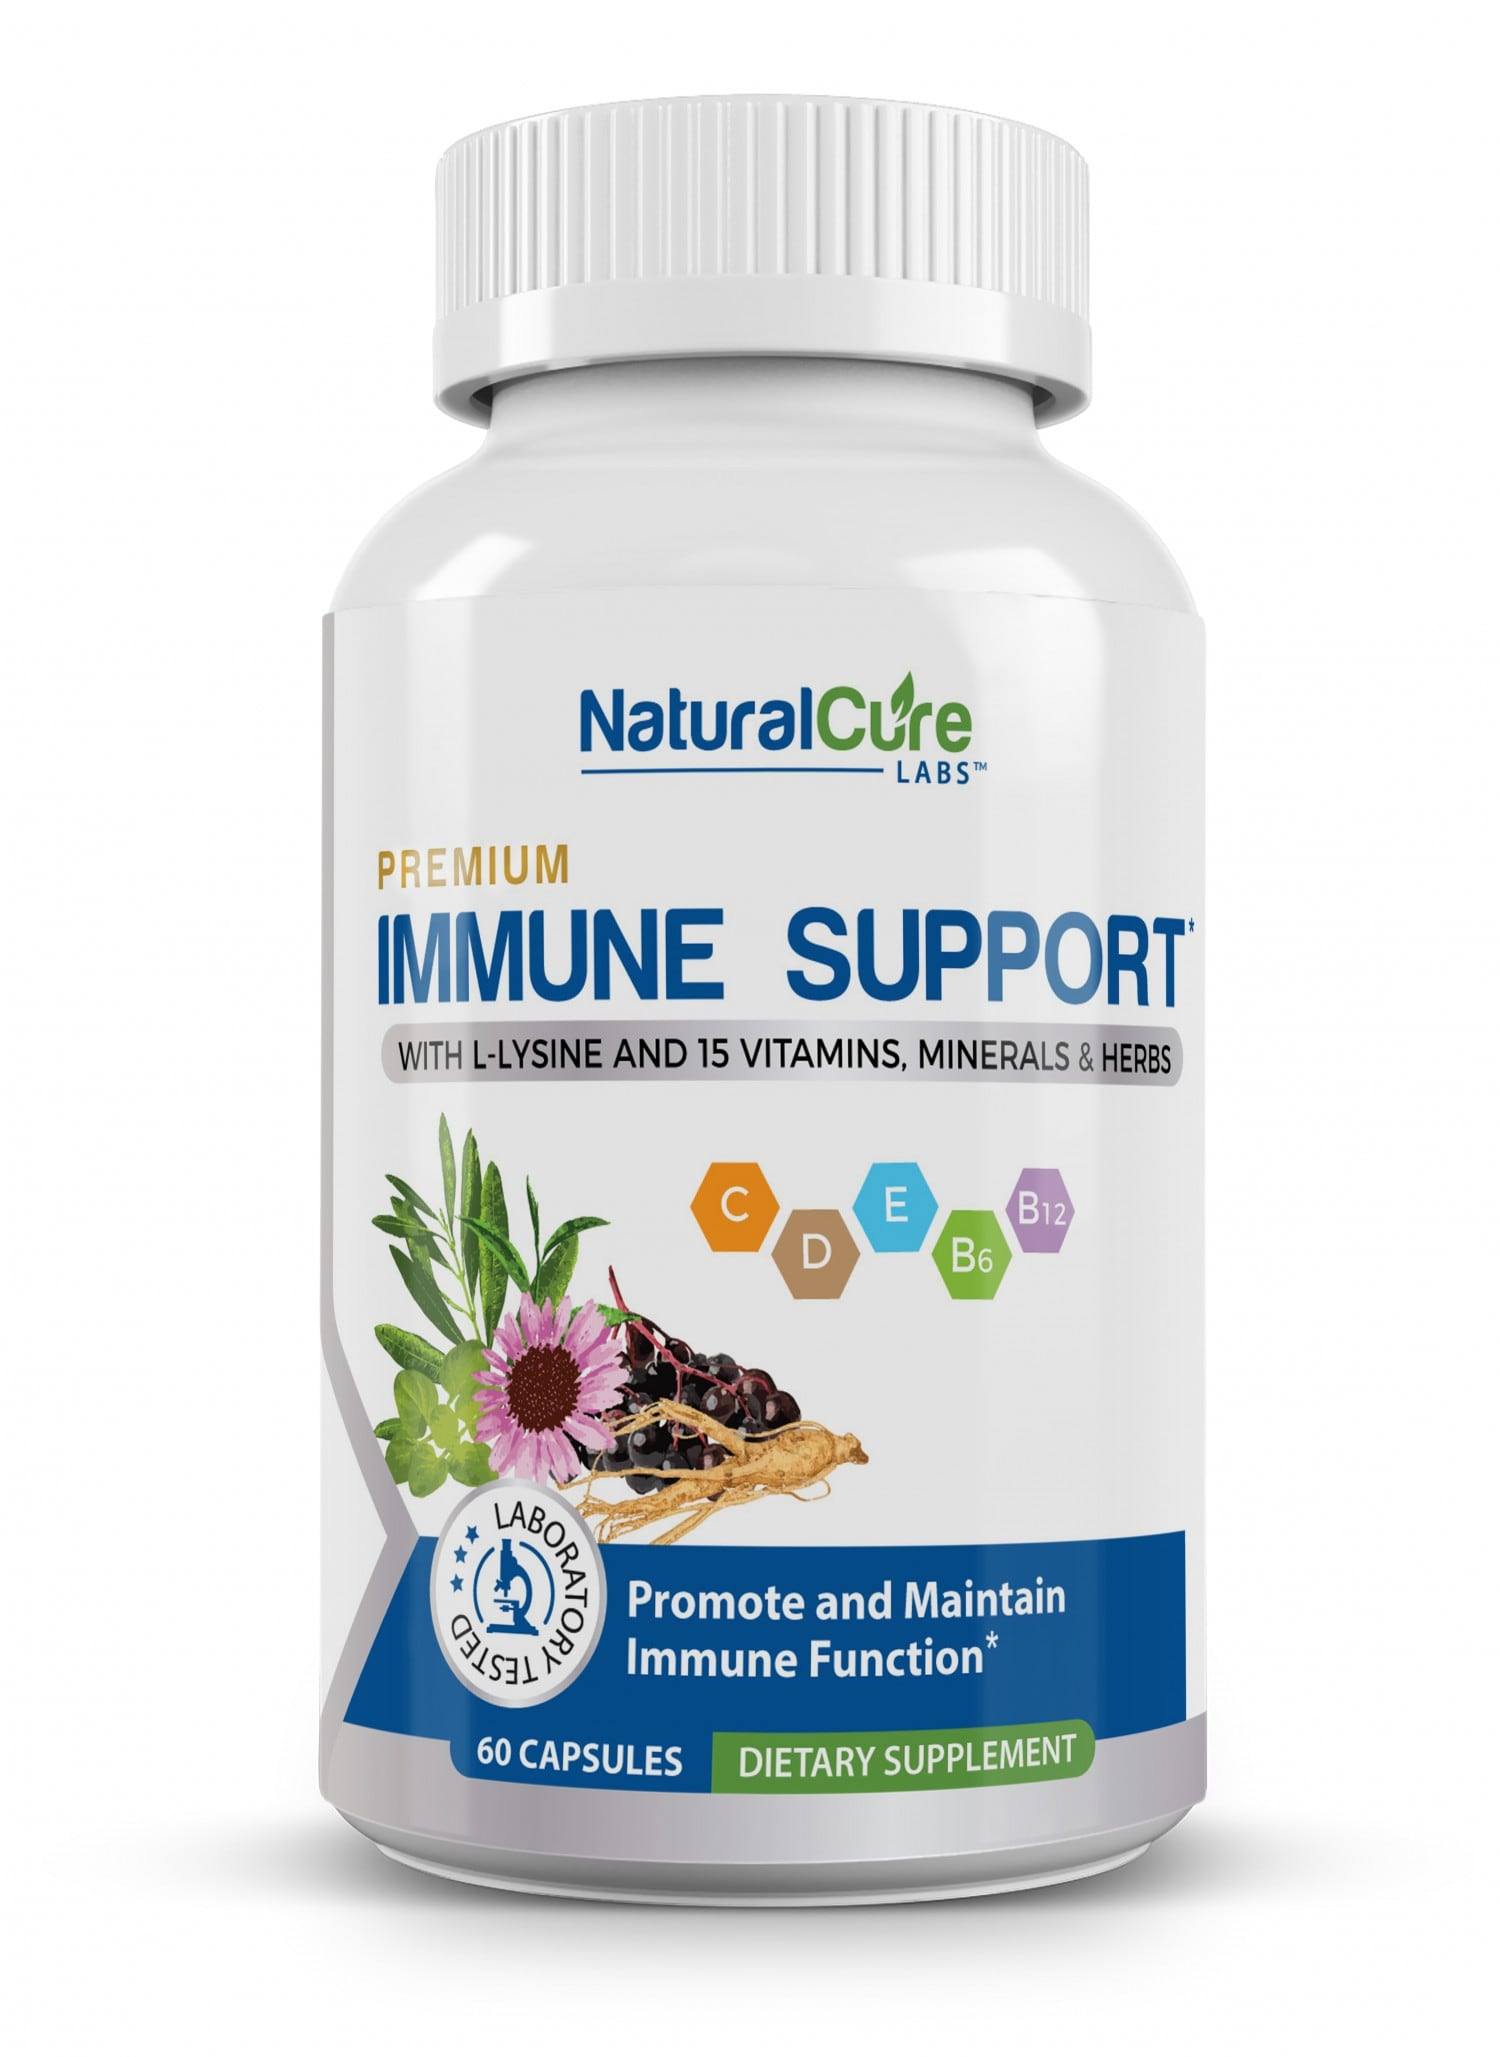 The new Immune Support blend has odorless garlic and a 100% natural formula.